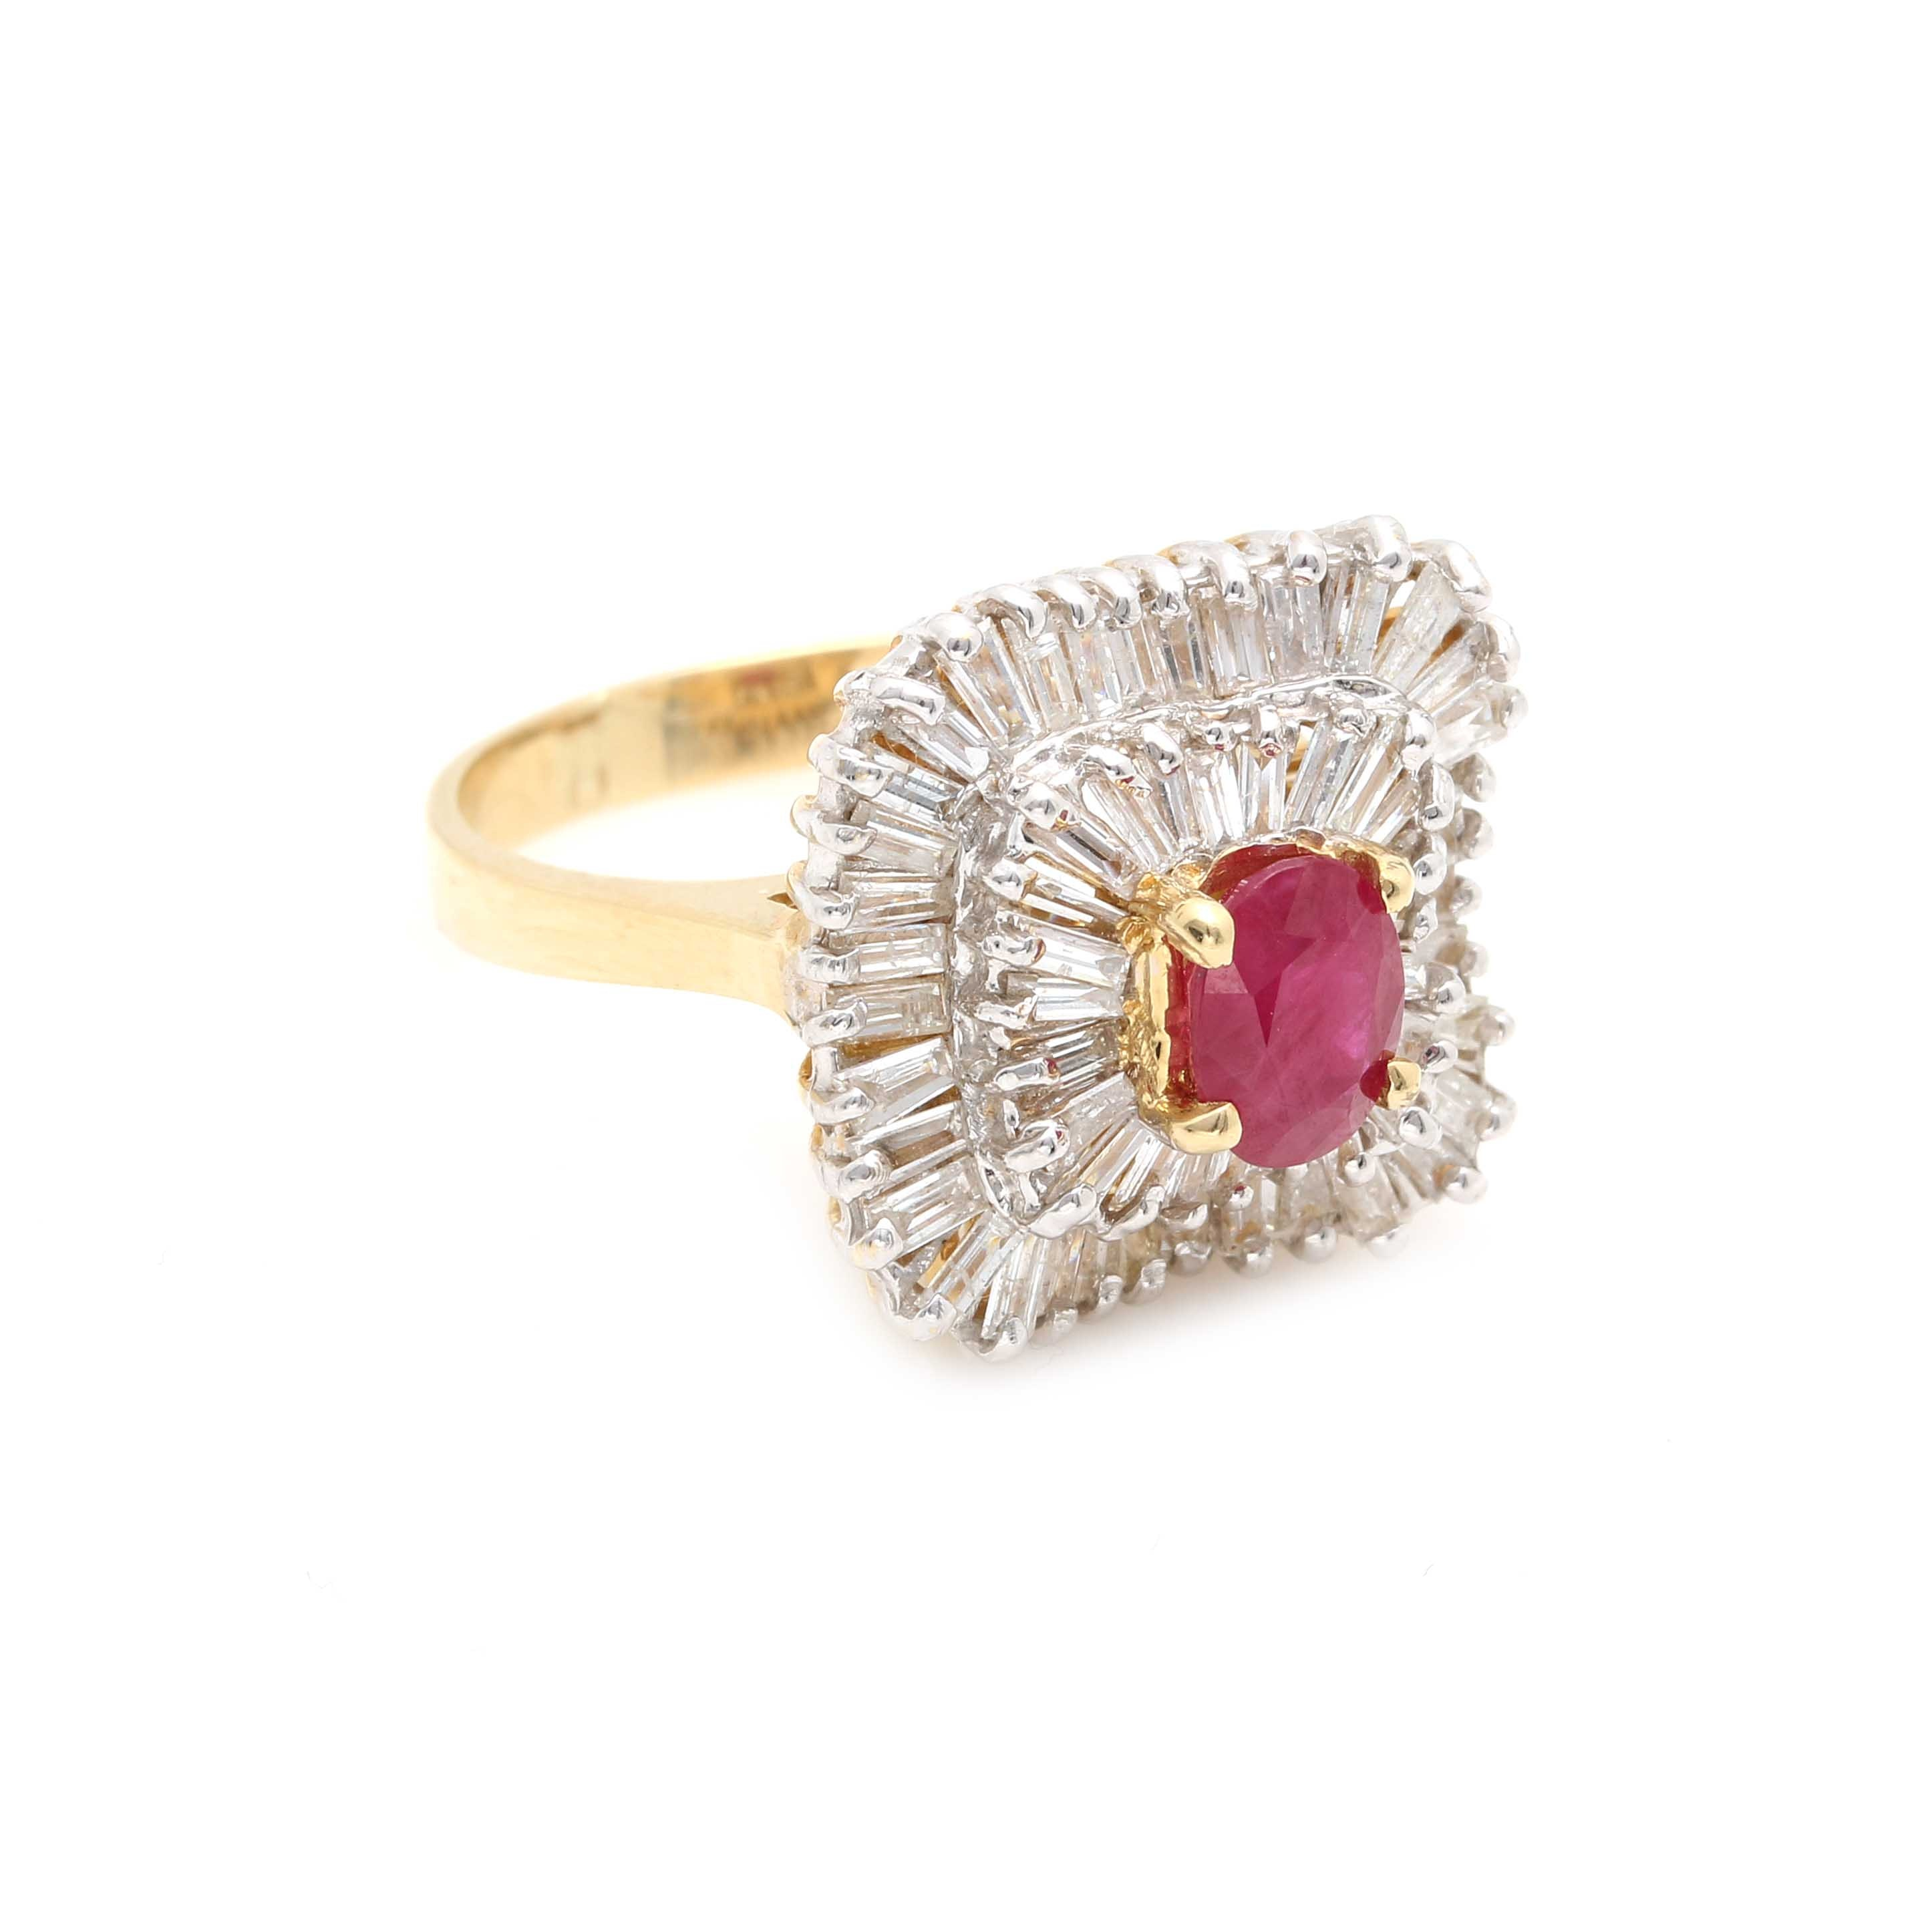 14K Yellow Gold 1.00 CT Ruby and 1.95 CTW Diamond Ring